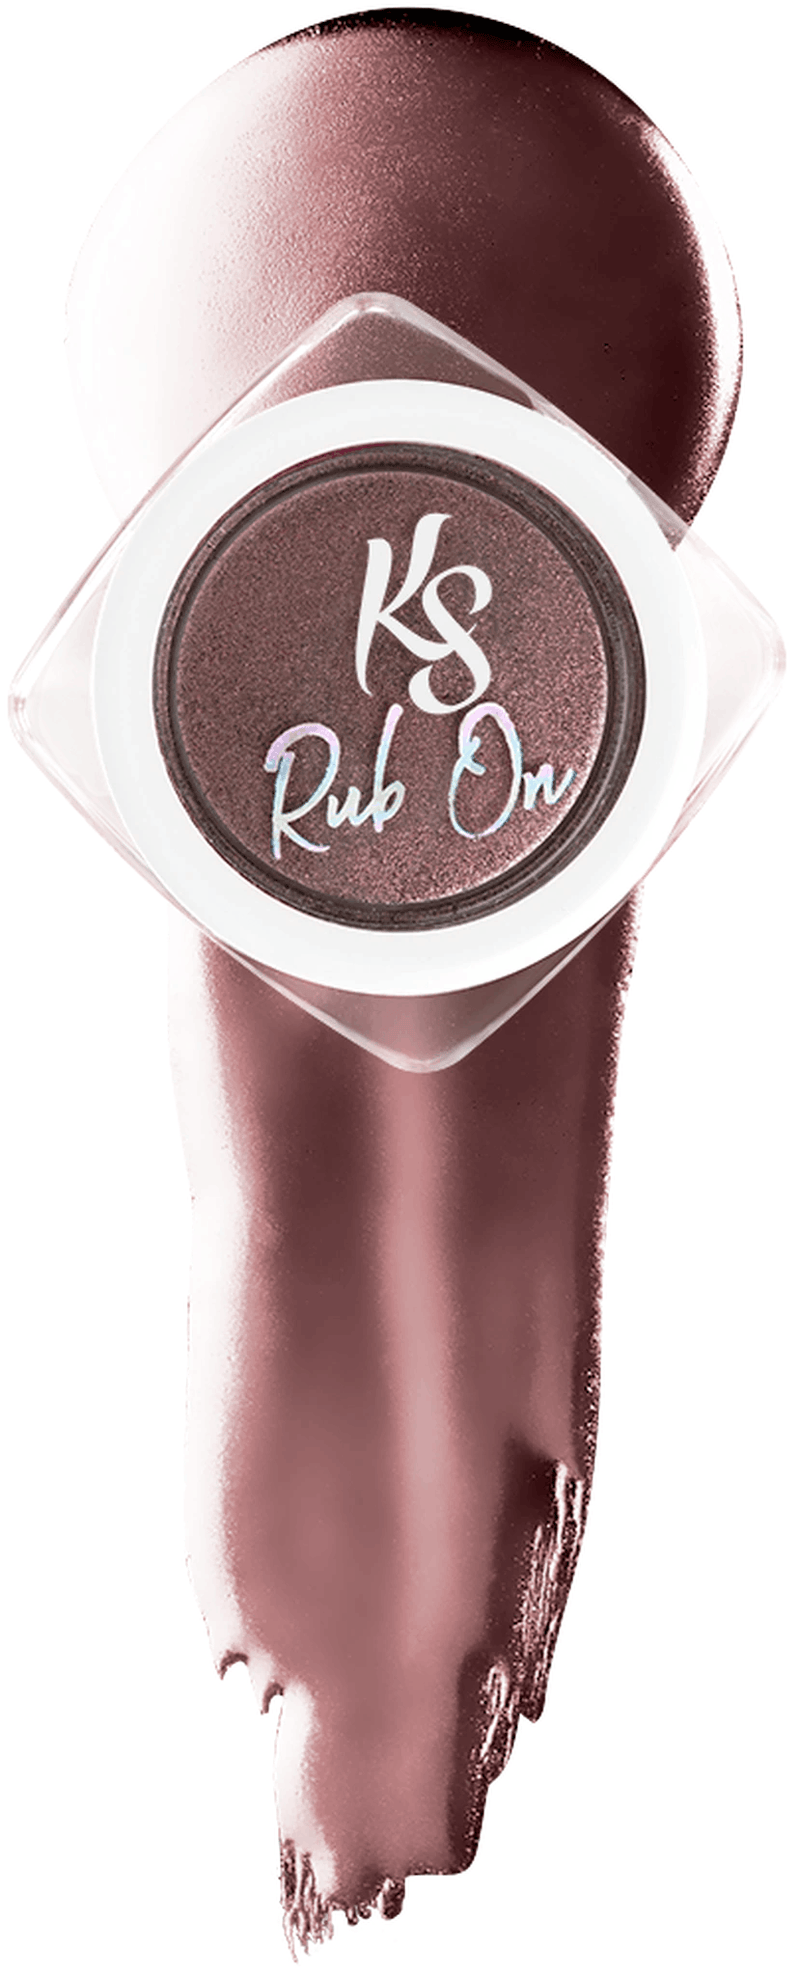 Kiara Sky Rub On Color Powder - Chrome - ROSE GOLD KSRORG